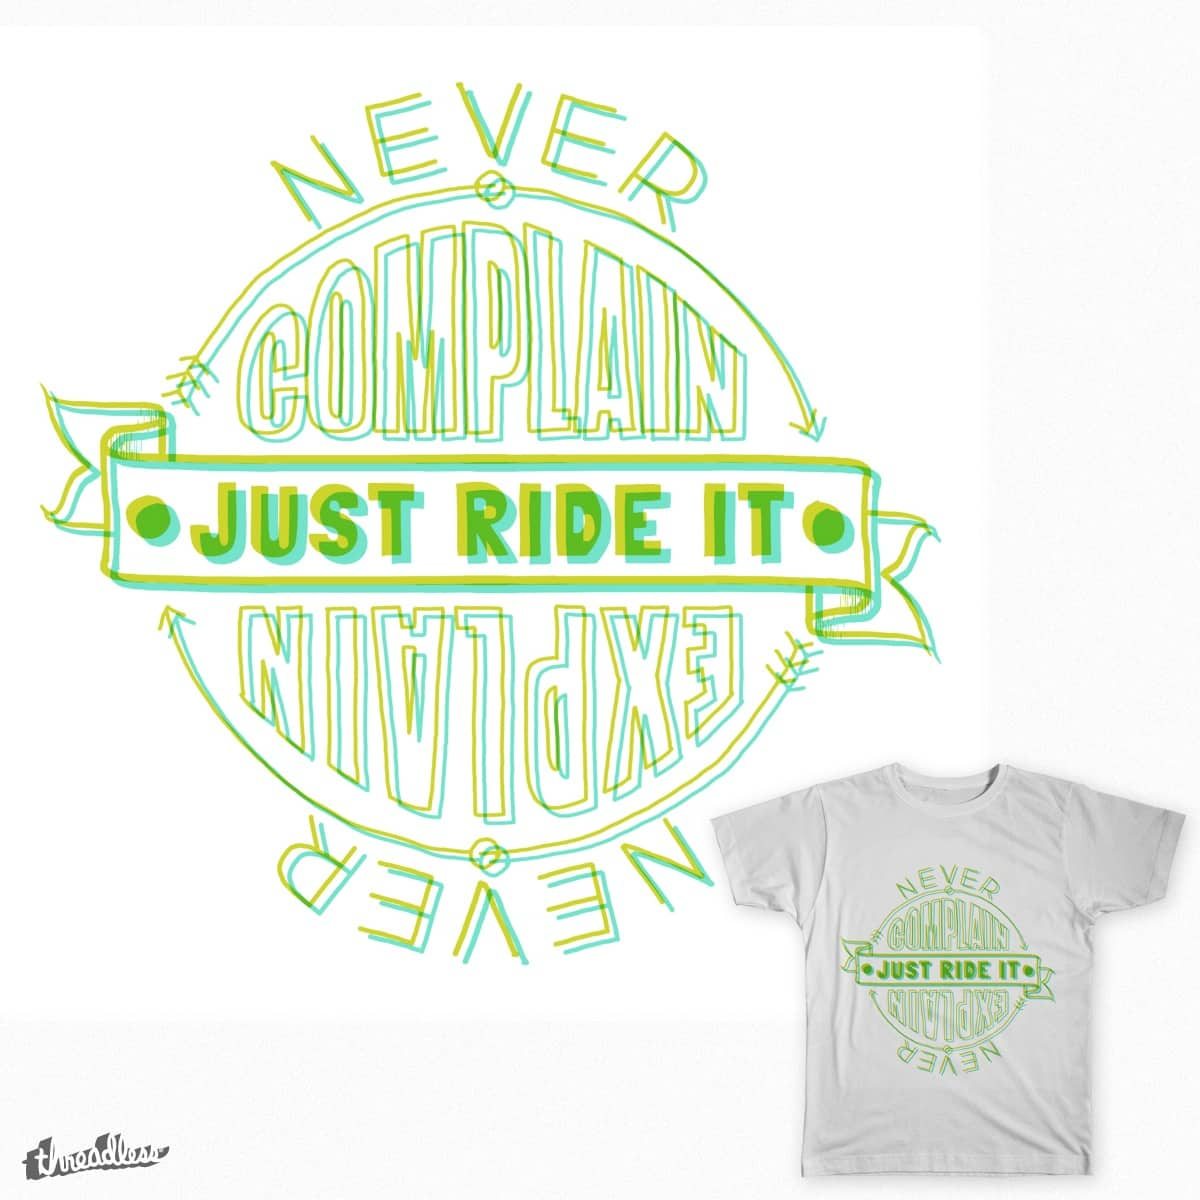 NEVER by tileXIII on Threadless